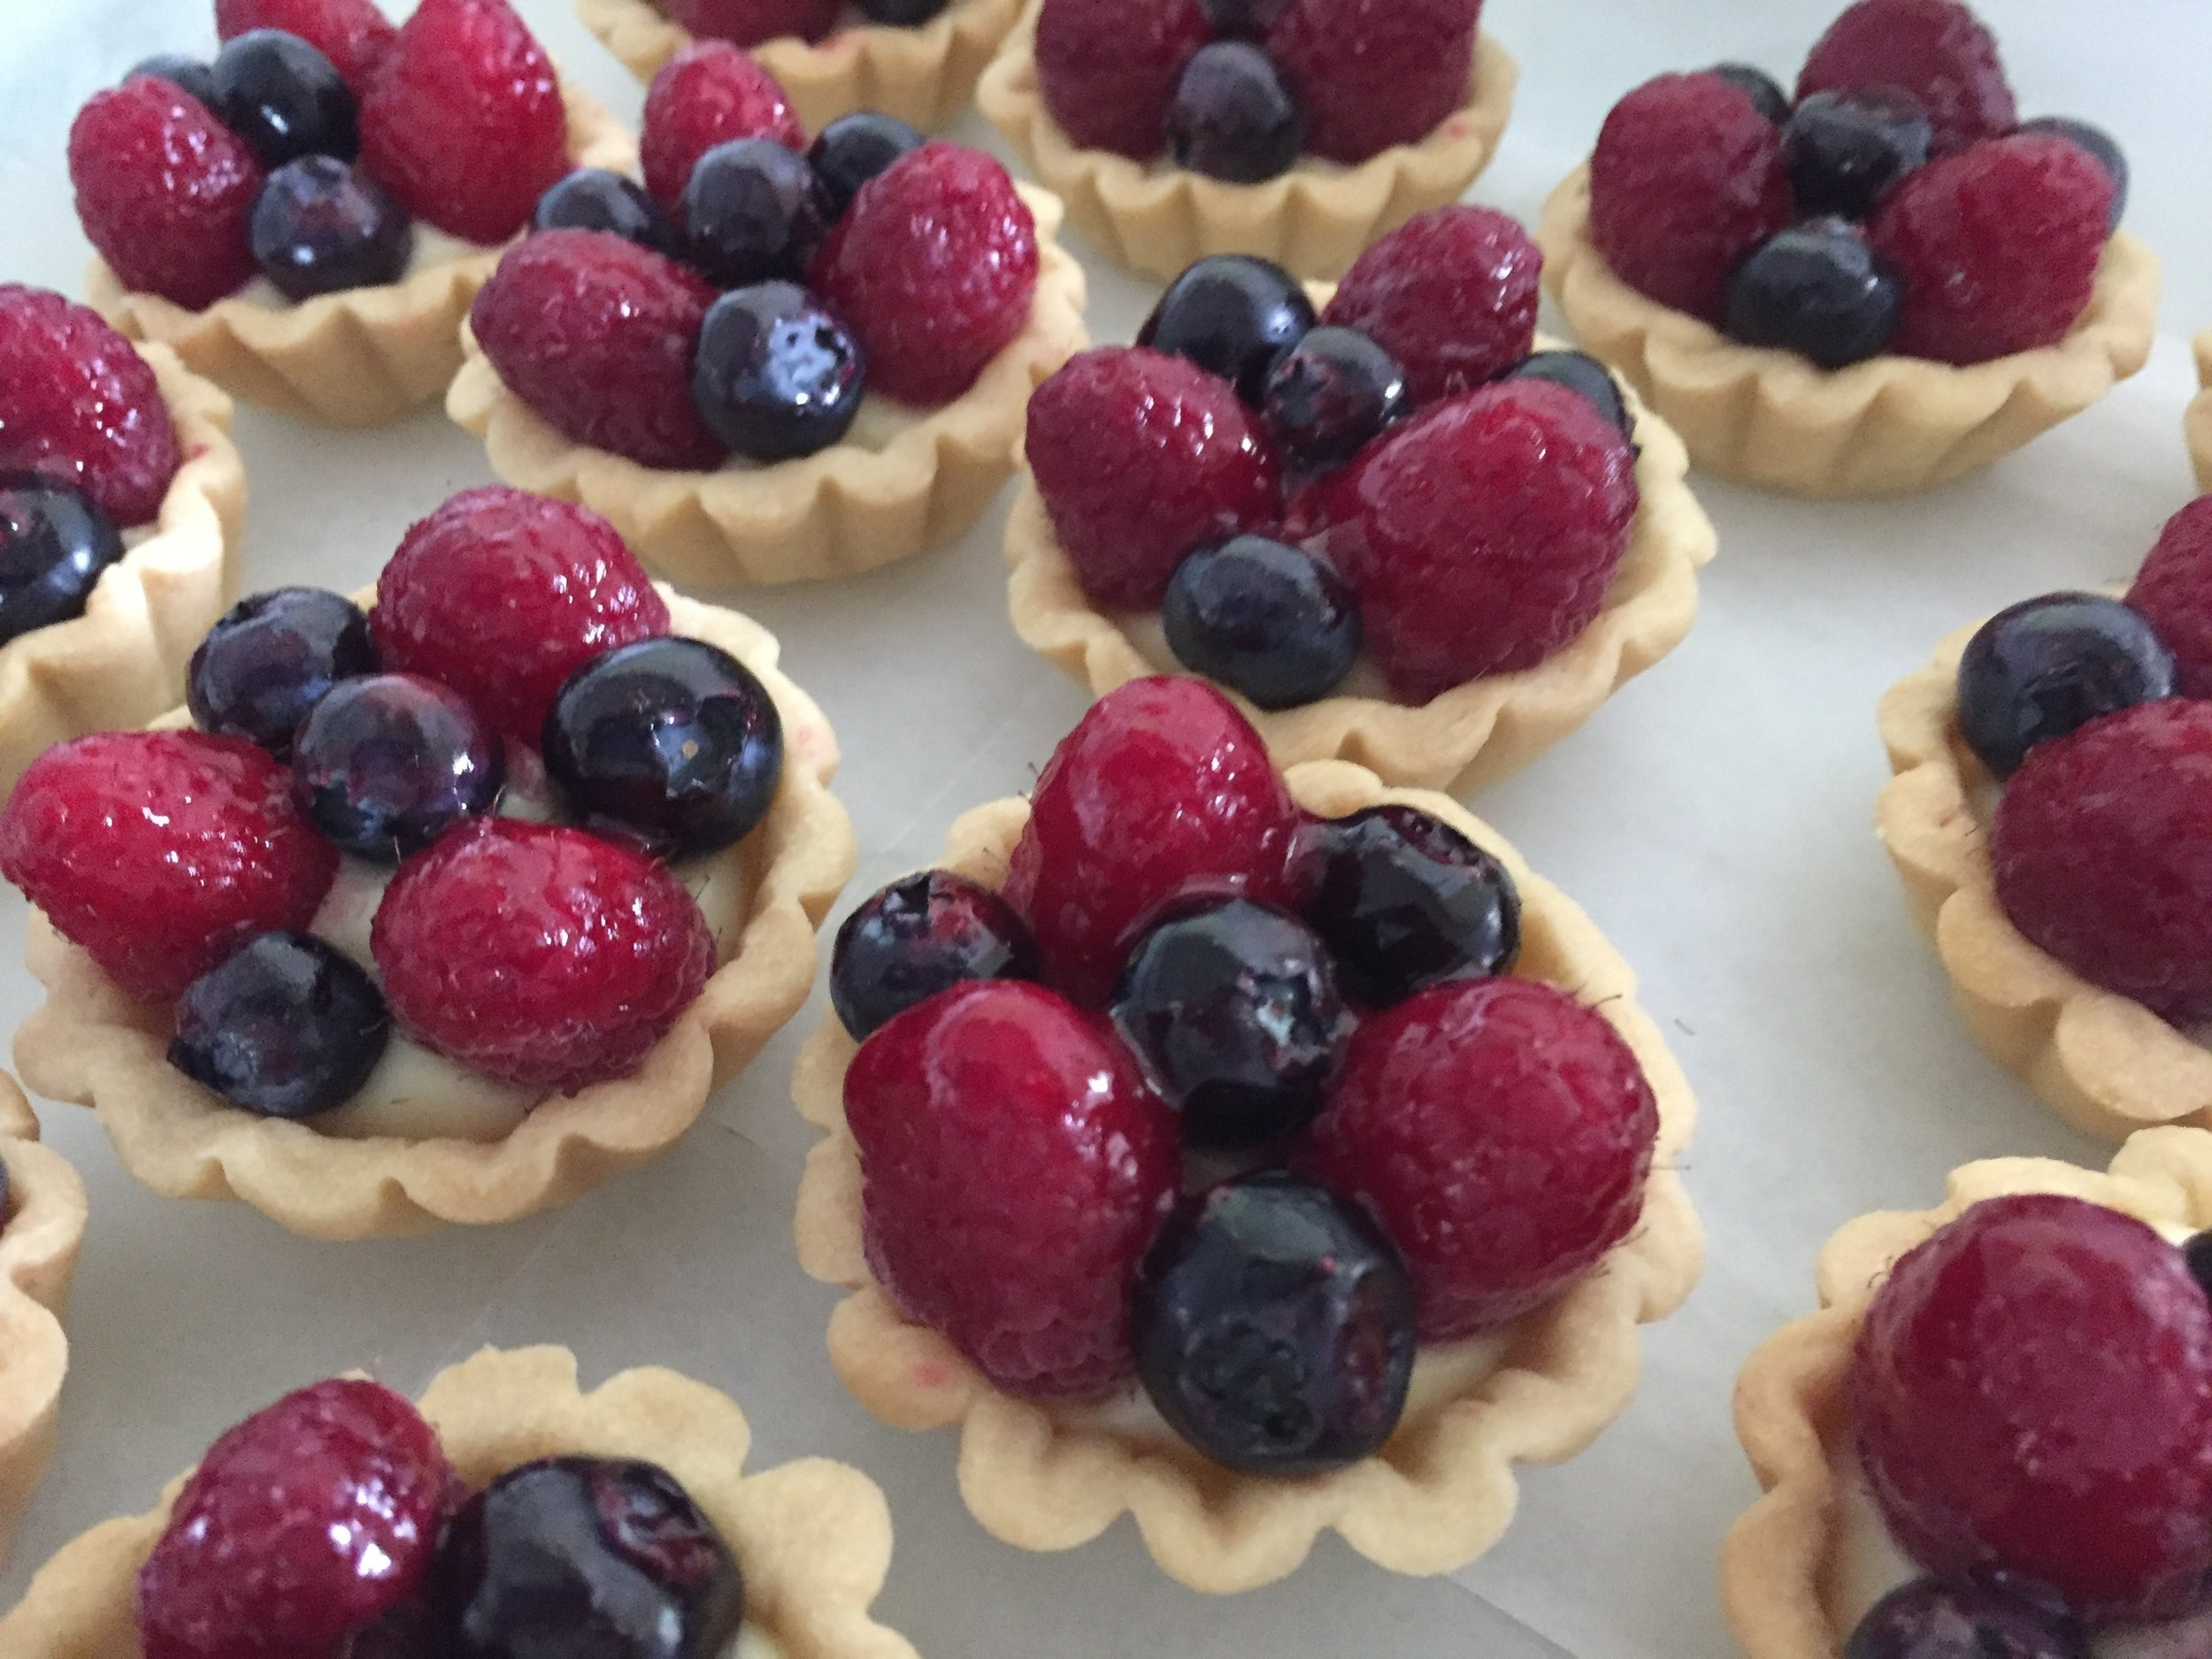 Fresh berries / pastry cream / raspberry  gelée  (yes - you've seen these before!)